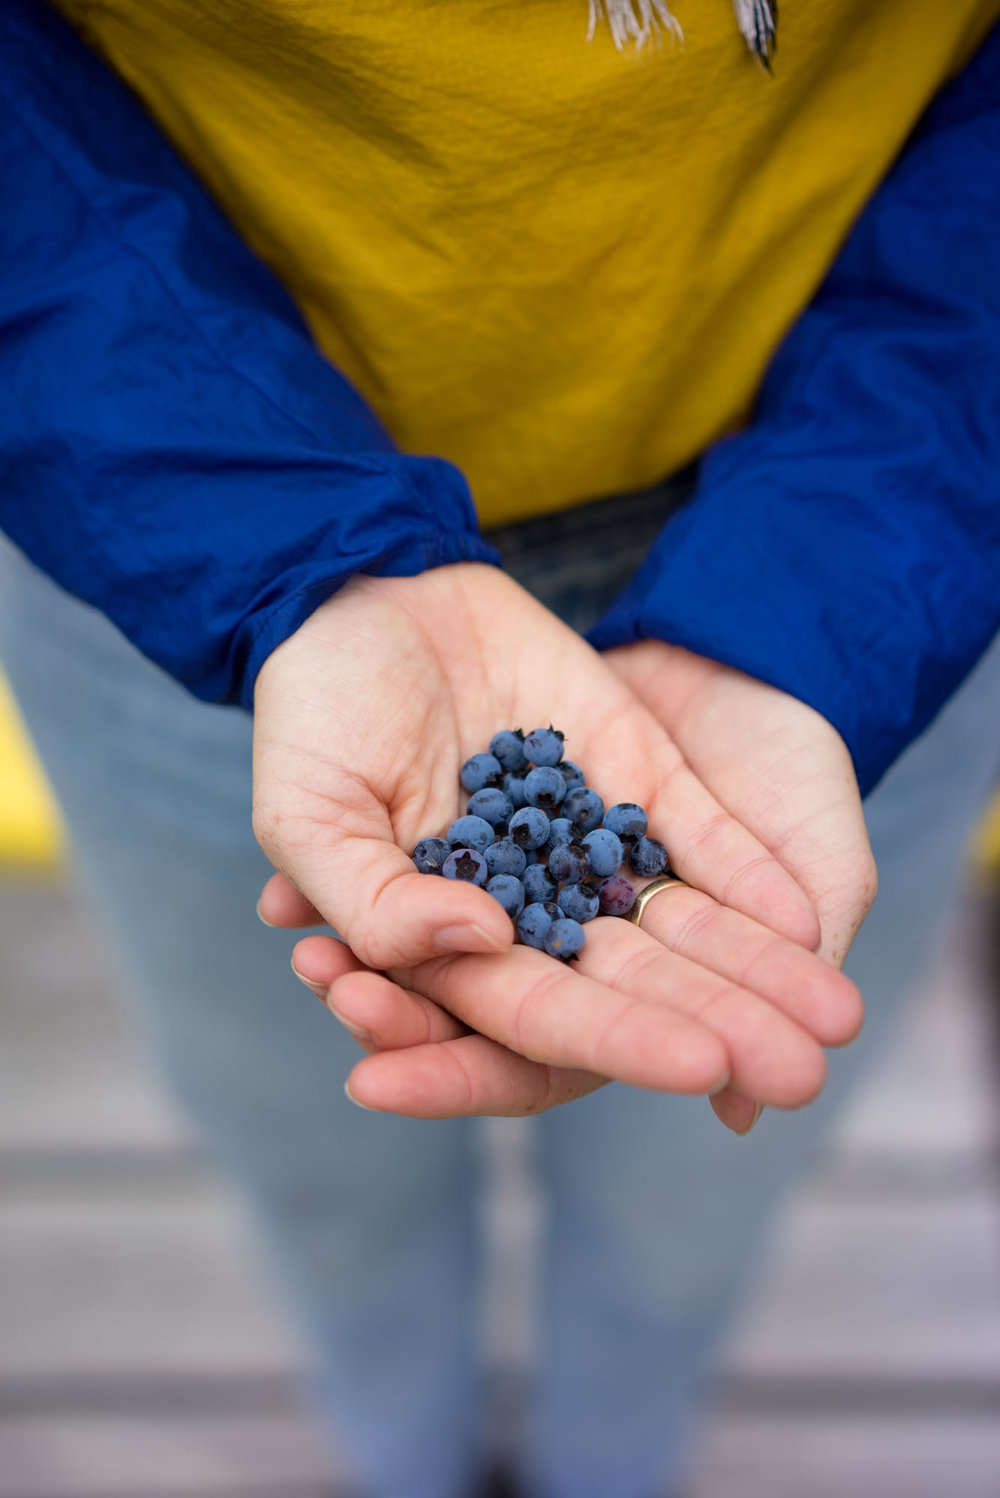 The blueberry haul